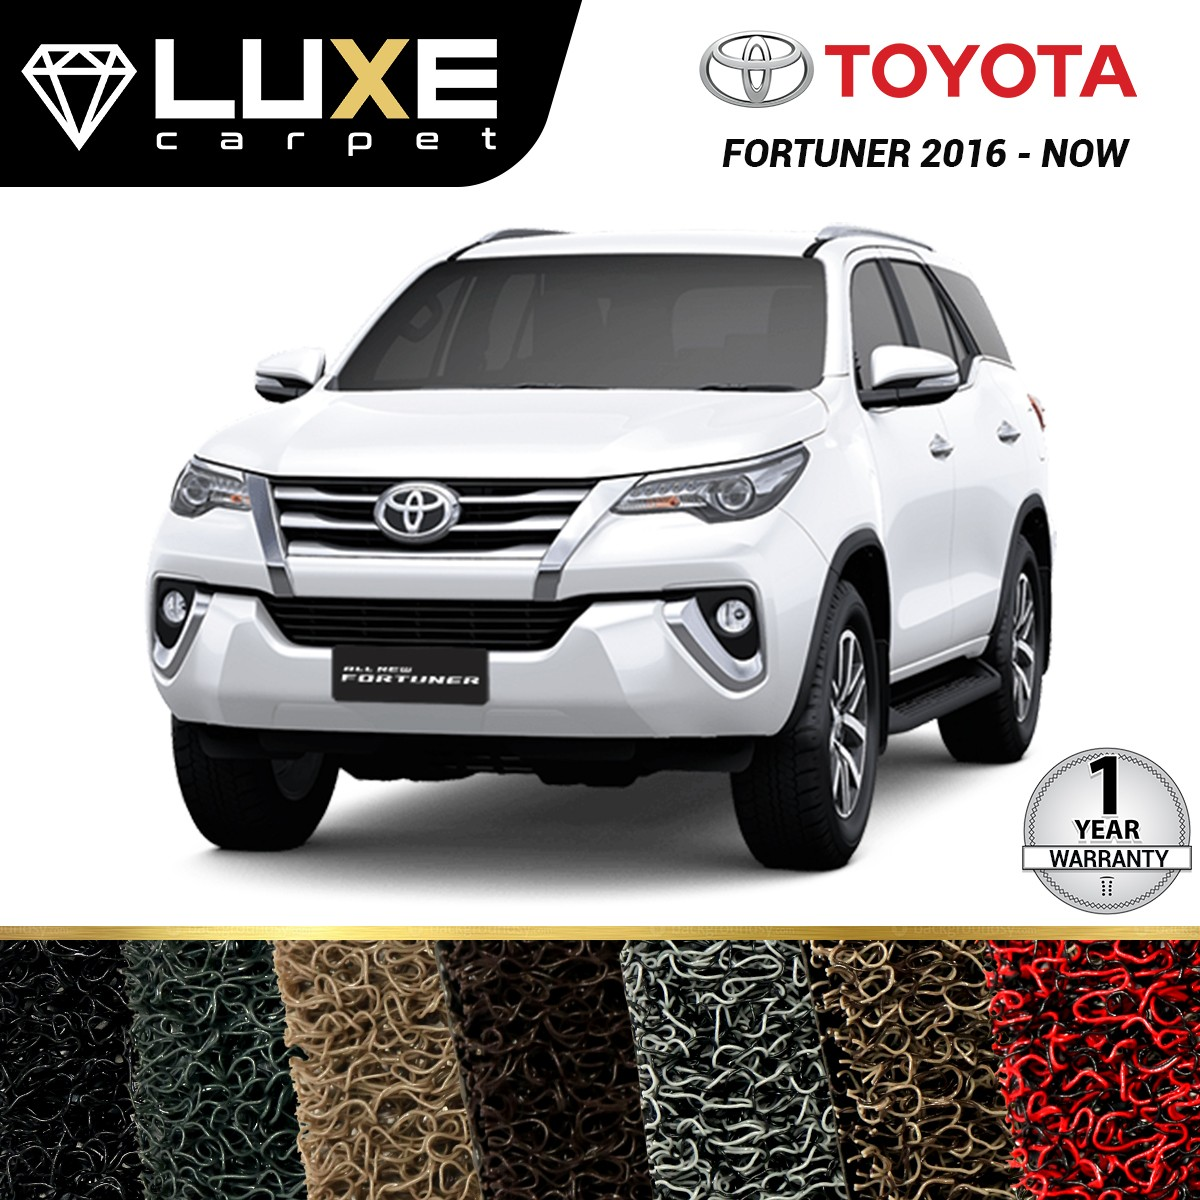 KARPET LUXE + BAGASI TOYOTA ALL NEW FORTUNER 2016 UP - GOLD SERIES